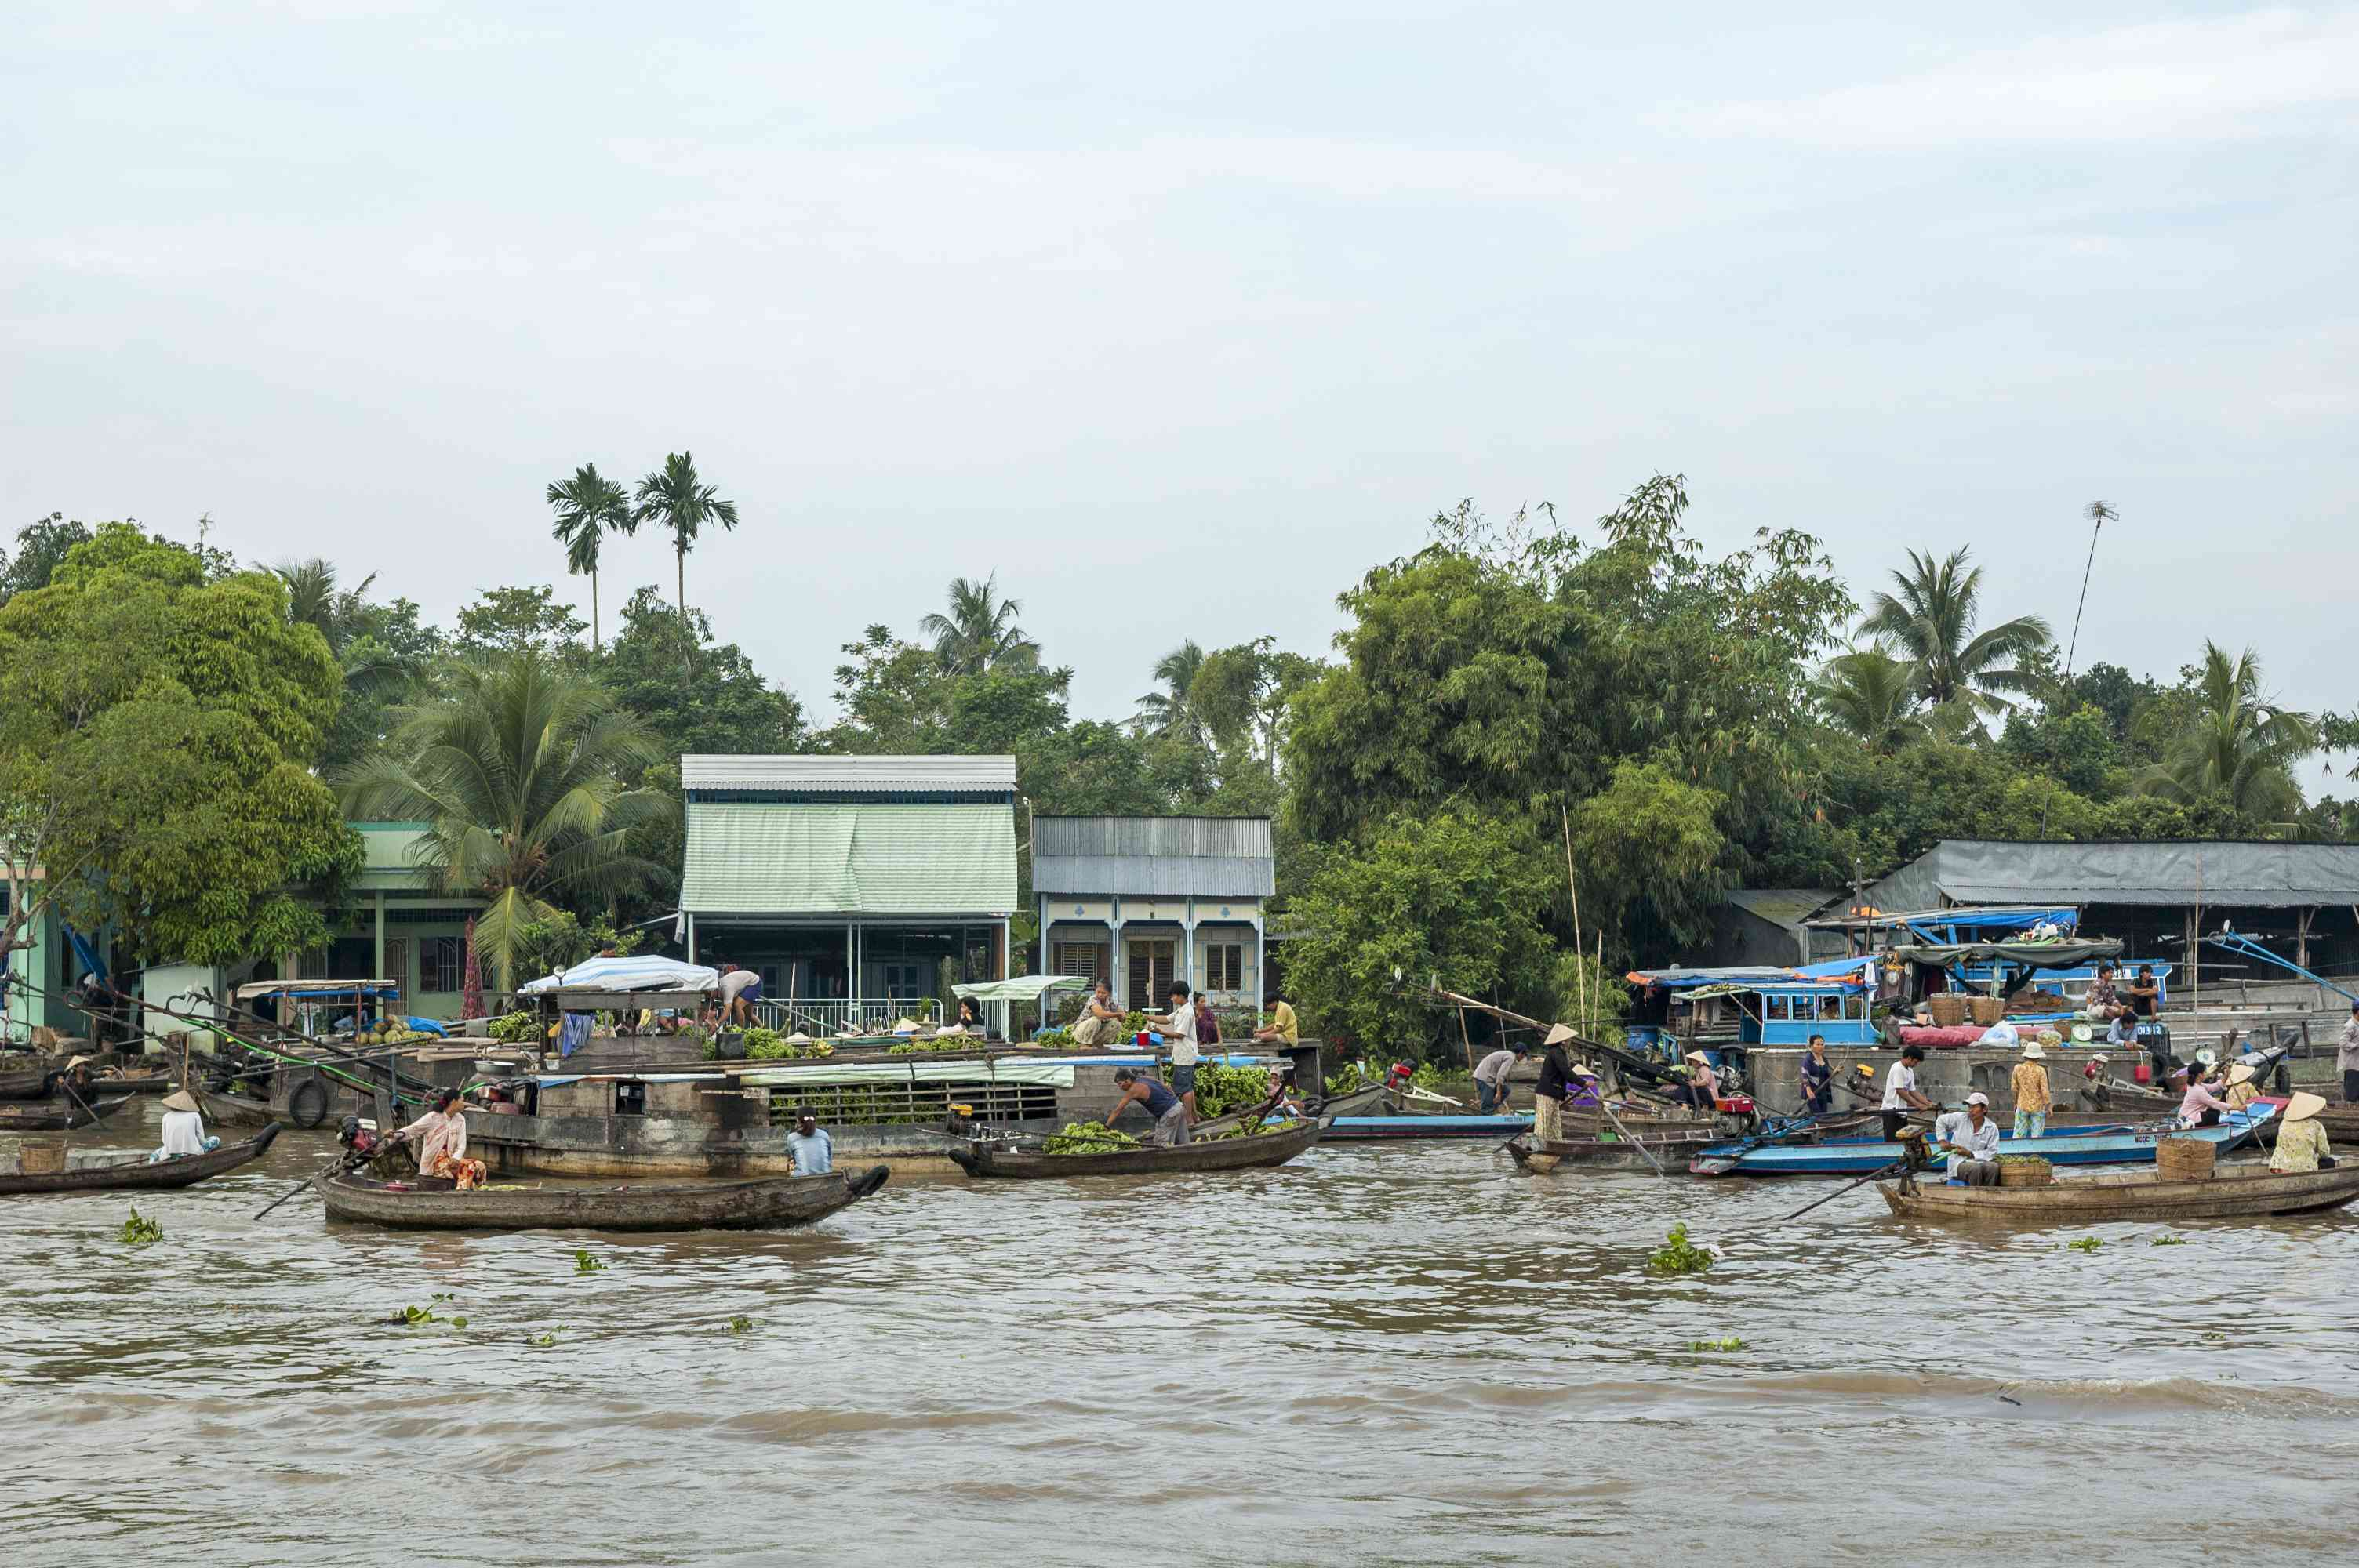 floating market on busy canal in Can Tho, Vietnam